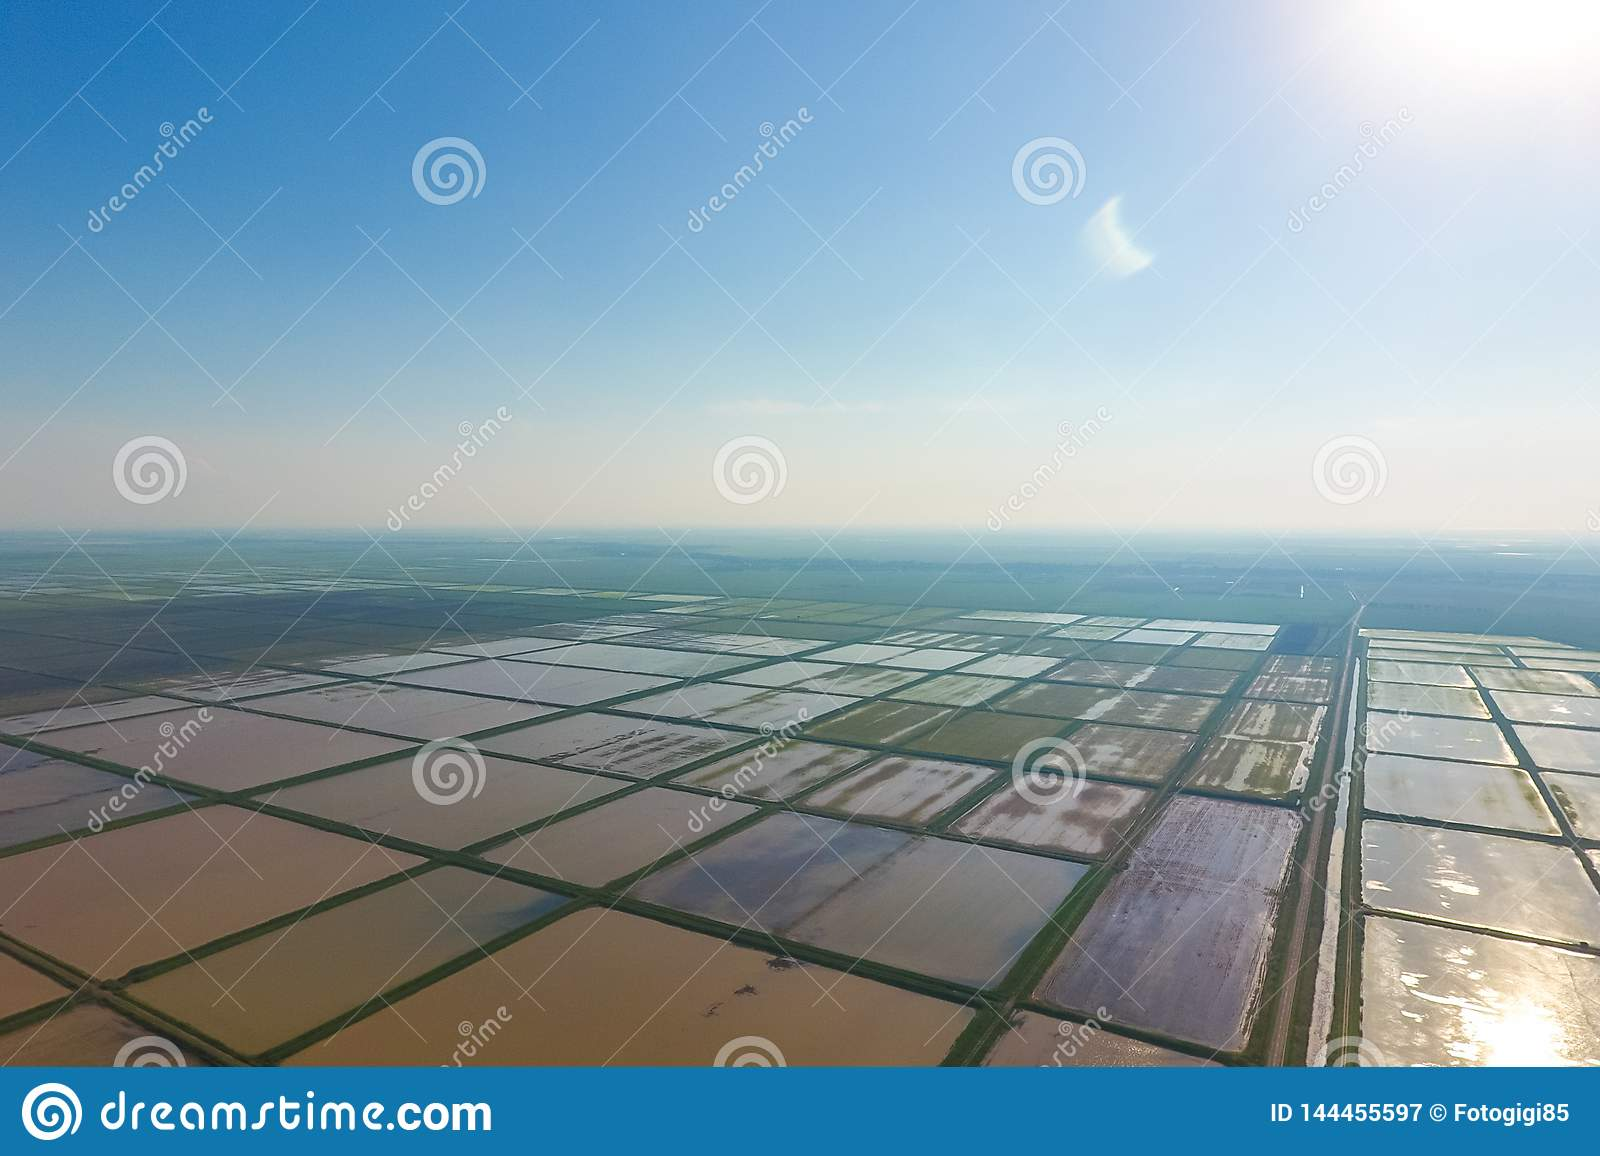 The rice fields are flooded with water. Flooded rice paddies. Agronomic methods of growing rice in the fields